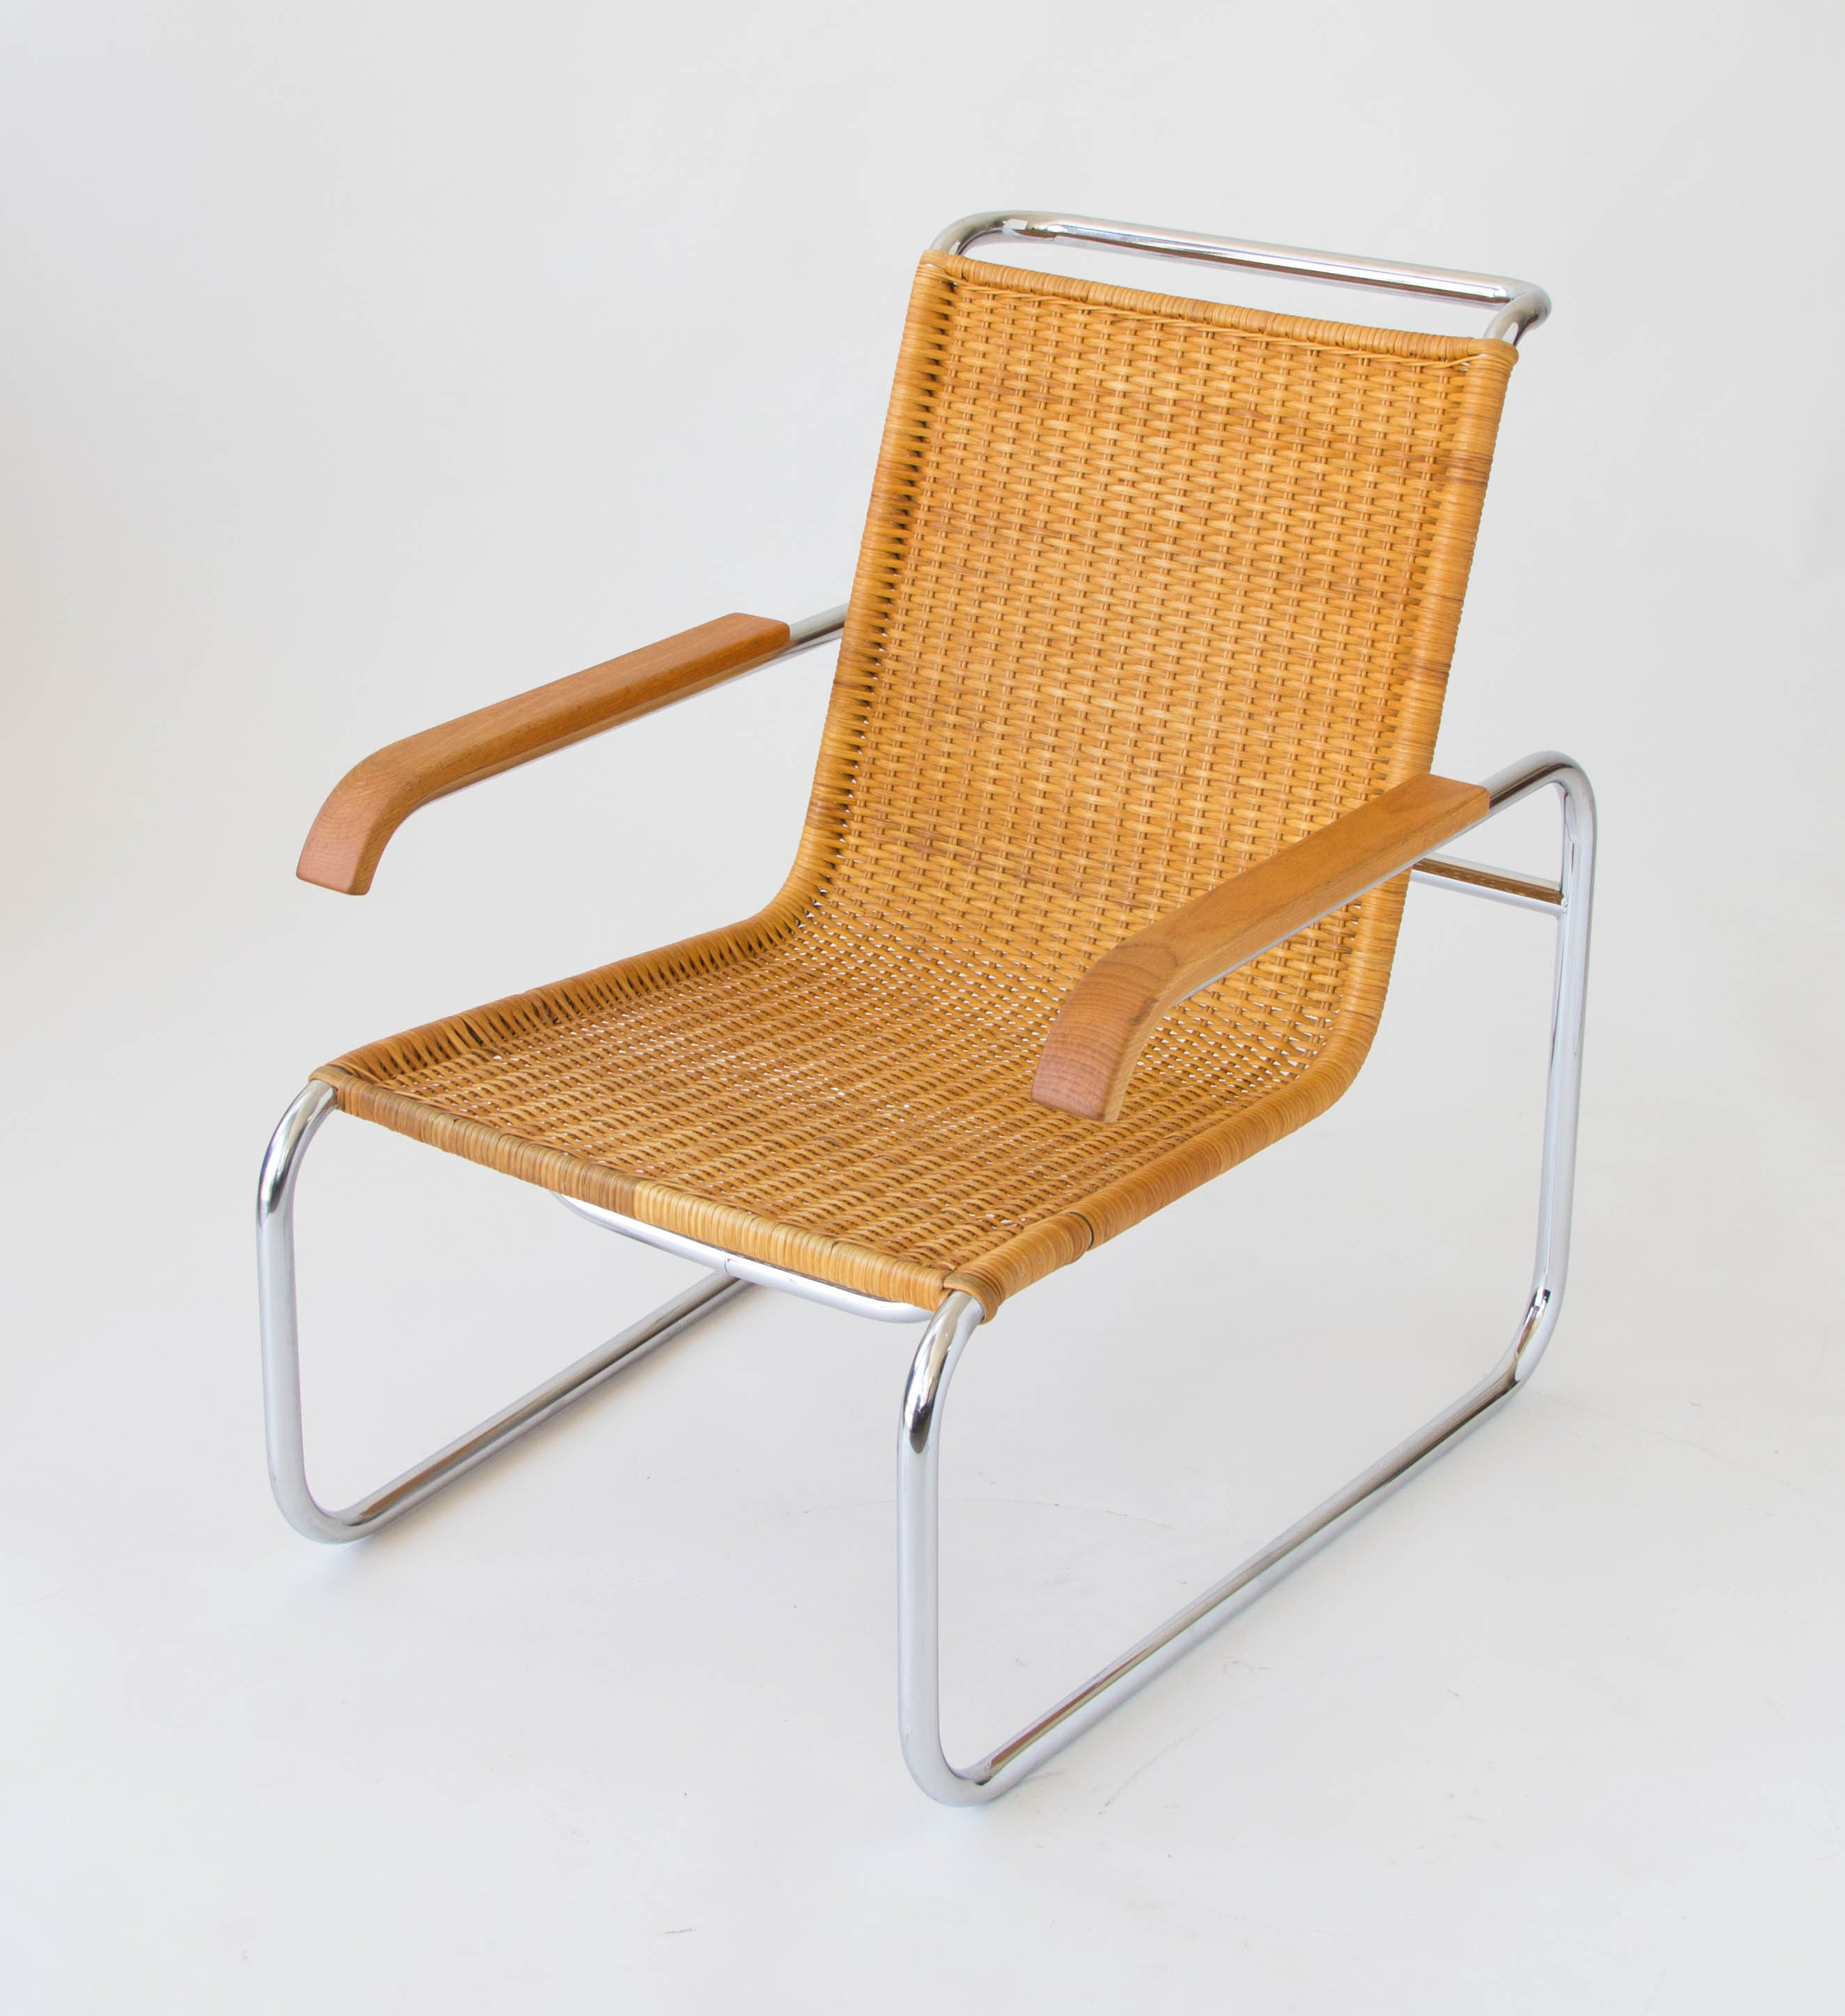 Inspirational Mesh Lounge Chair Inspirational